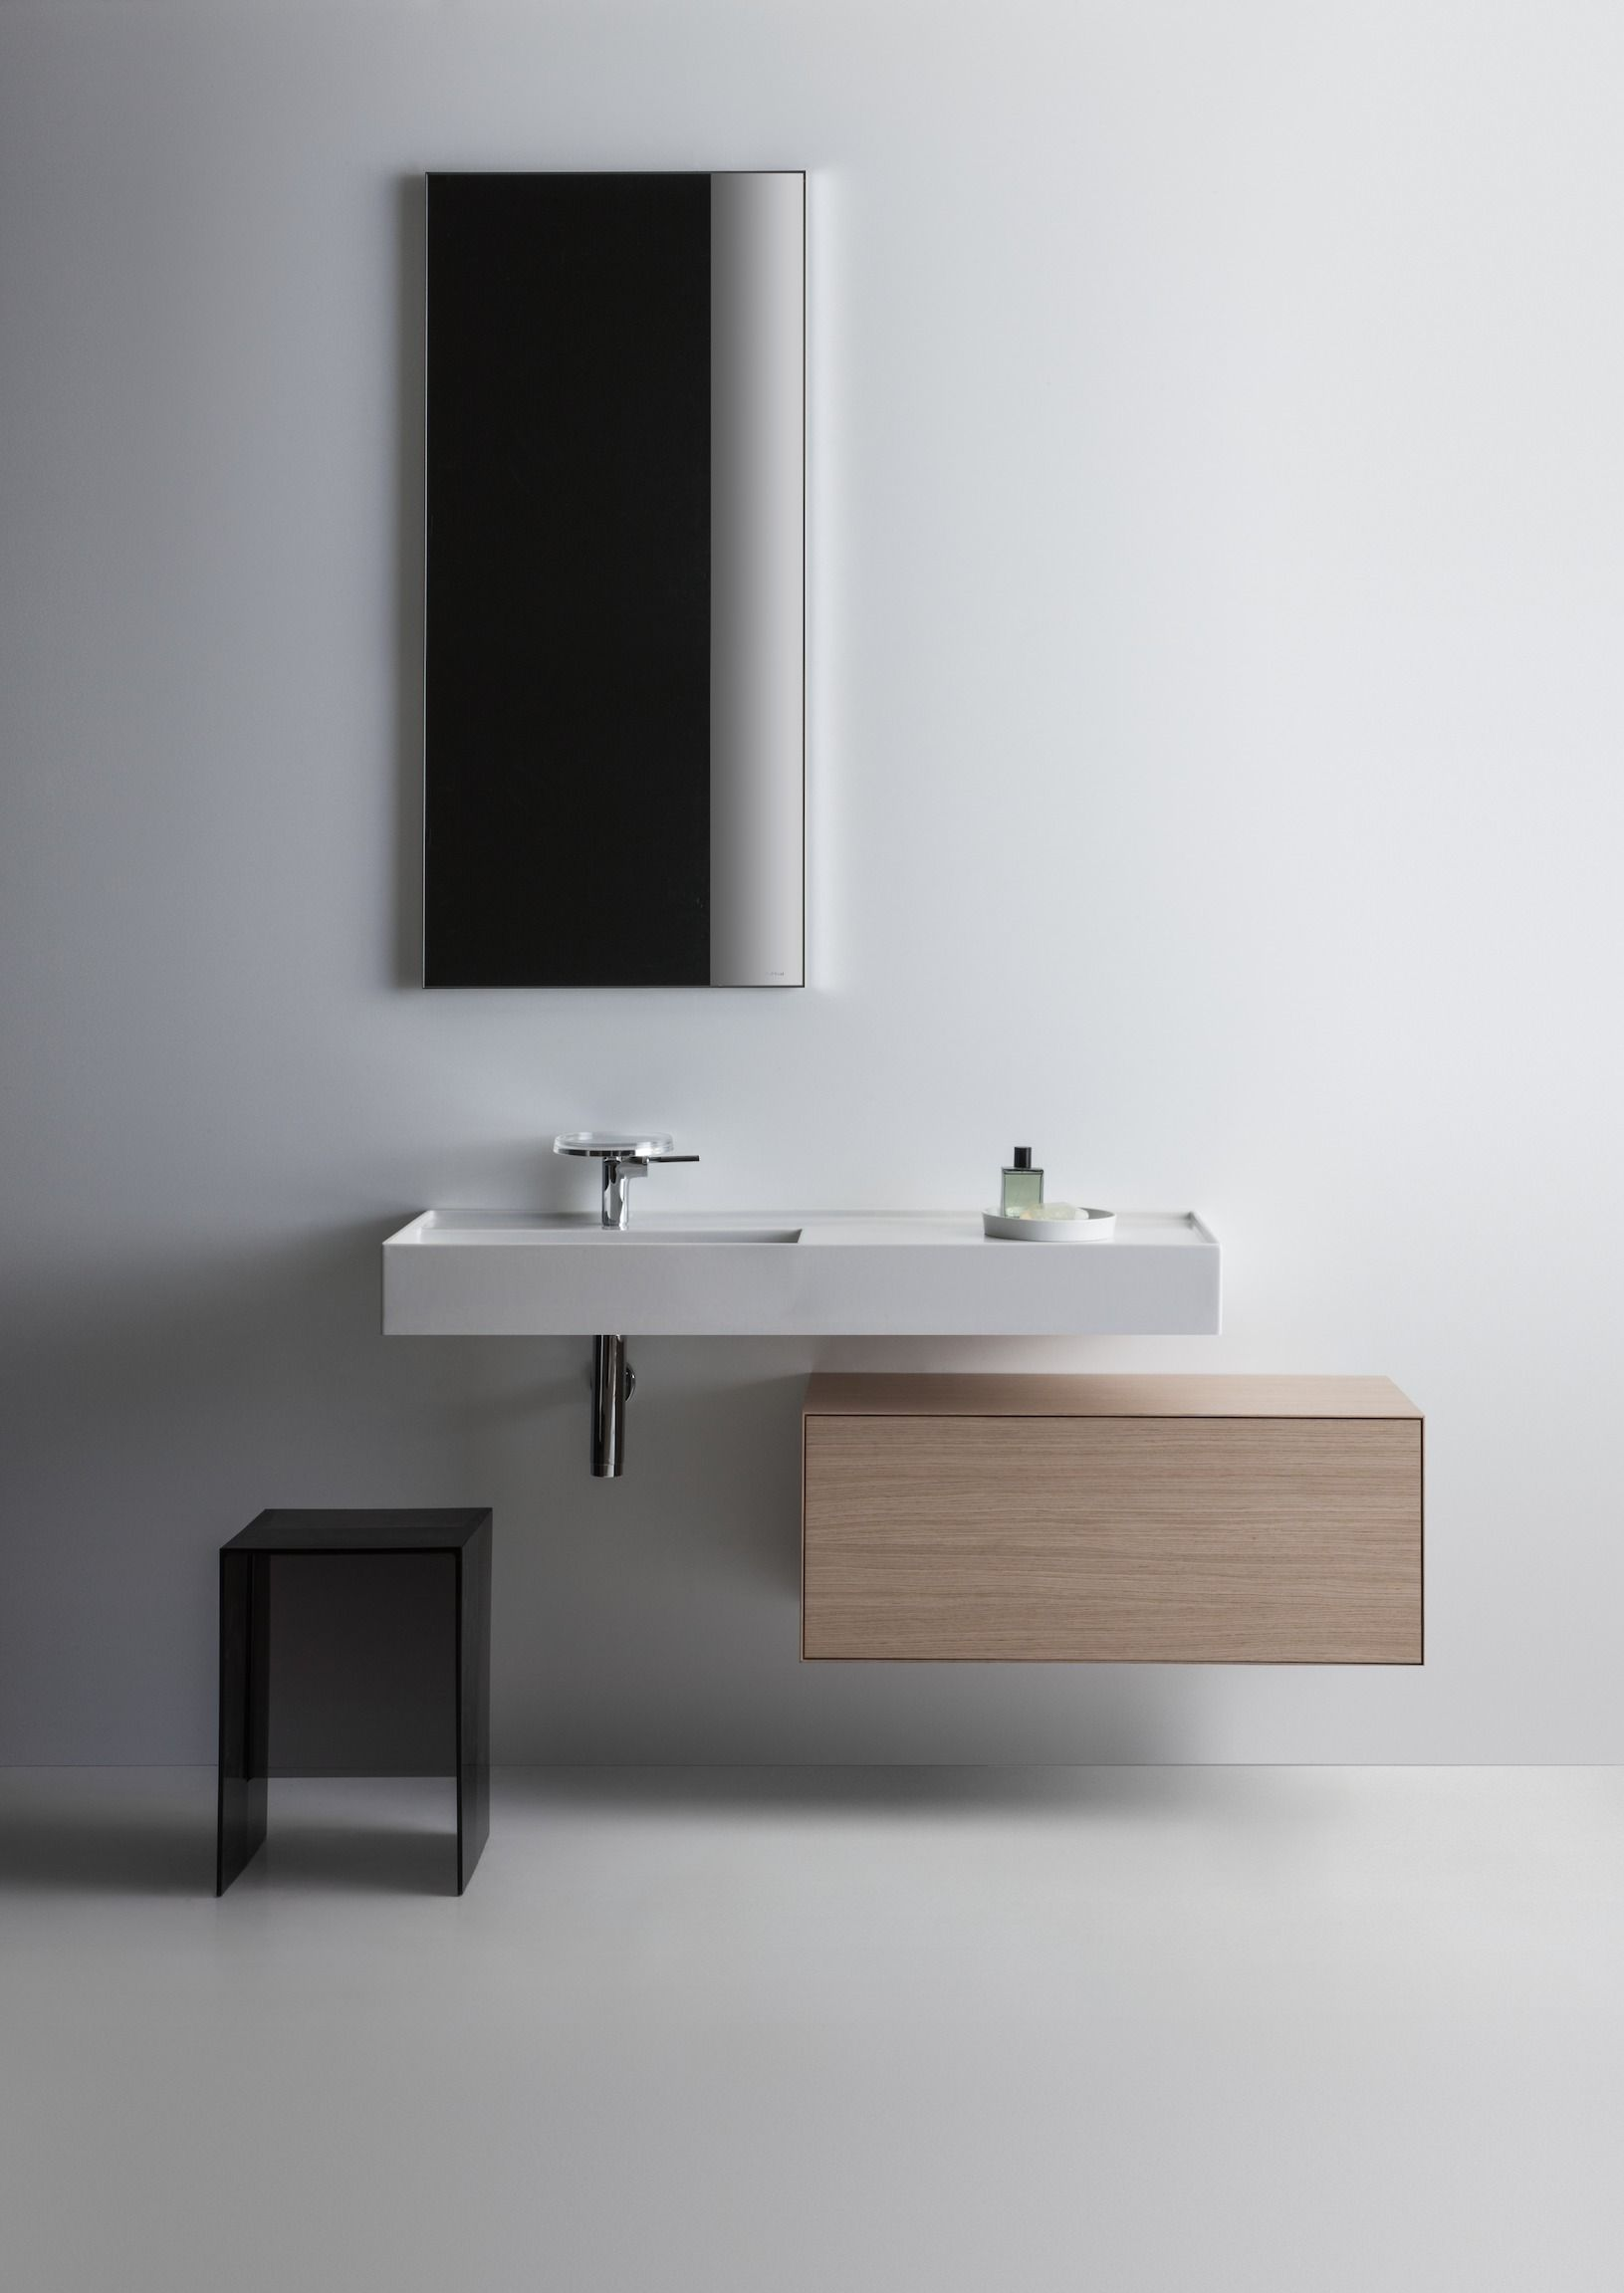 Laufen Waschbecken Kartell By Laufen Laufen Bathrooms Villa In The Forest In 2019